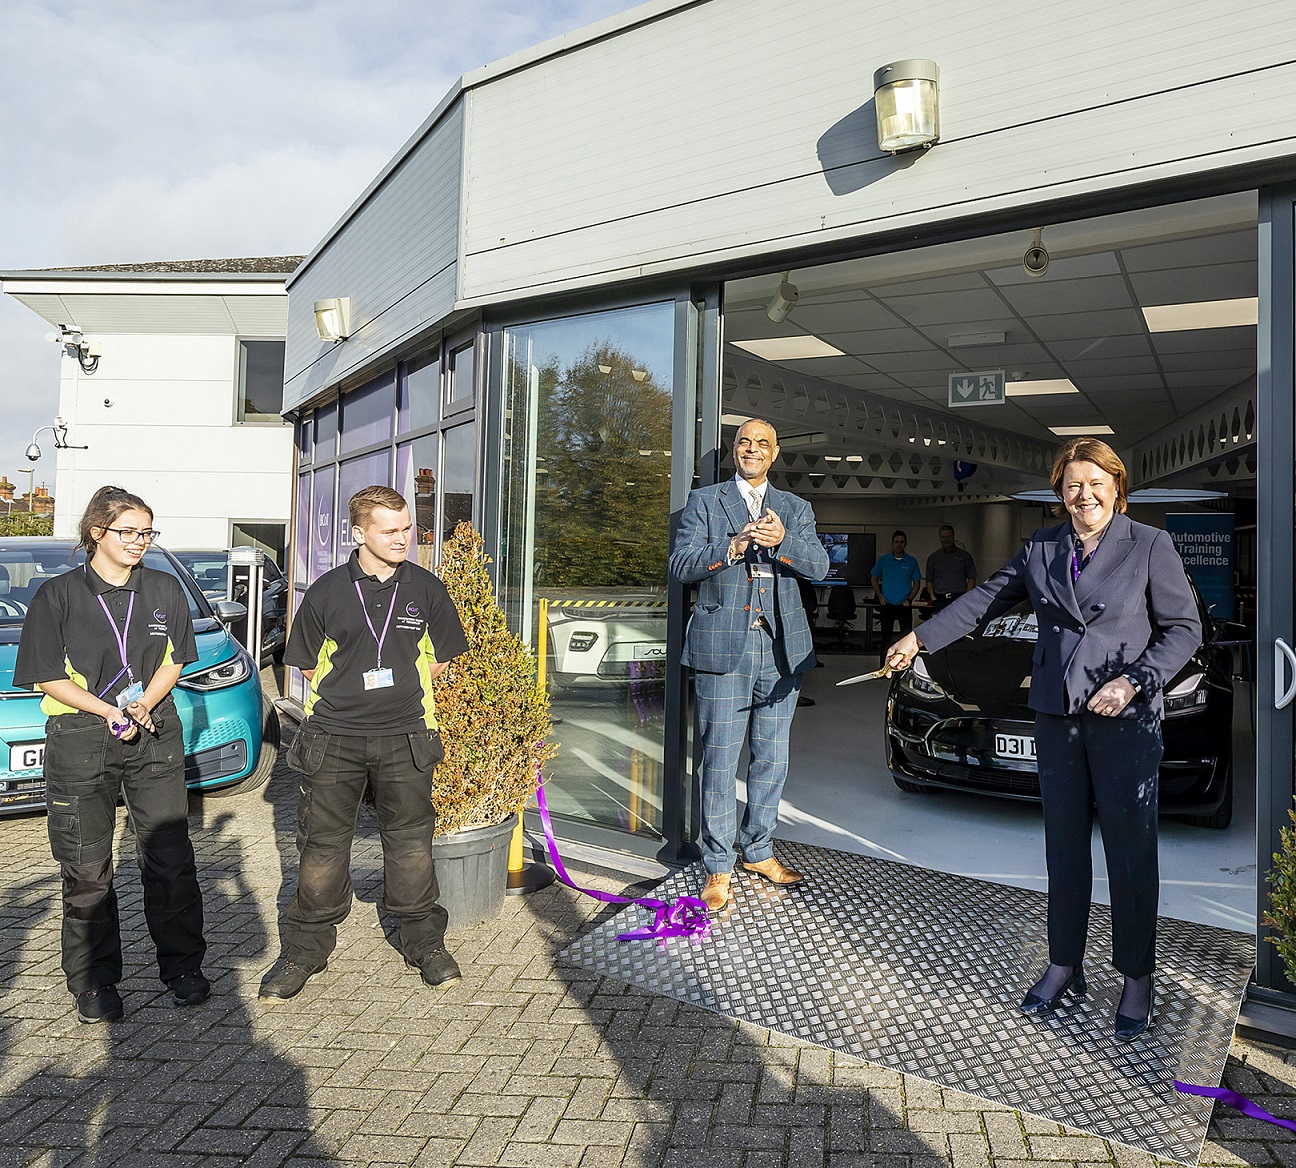 Maria Miller Basingstoke MP cuts the ribbon to officially launch the new Electric Vehicle Training Centre